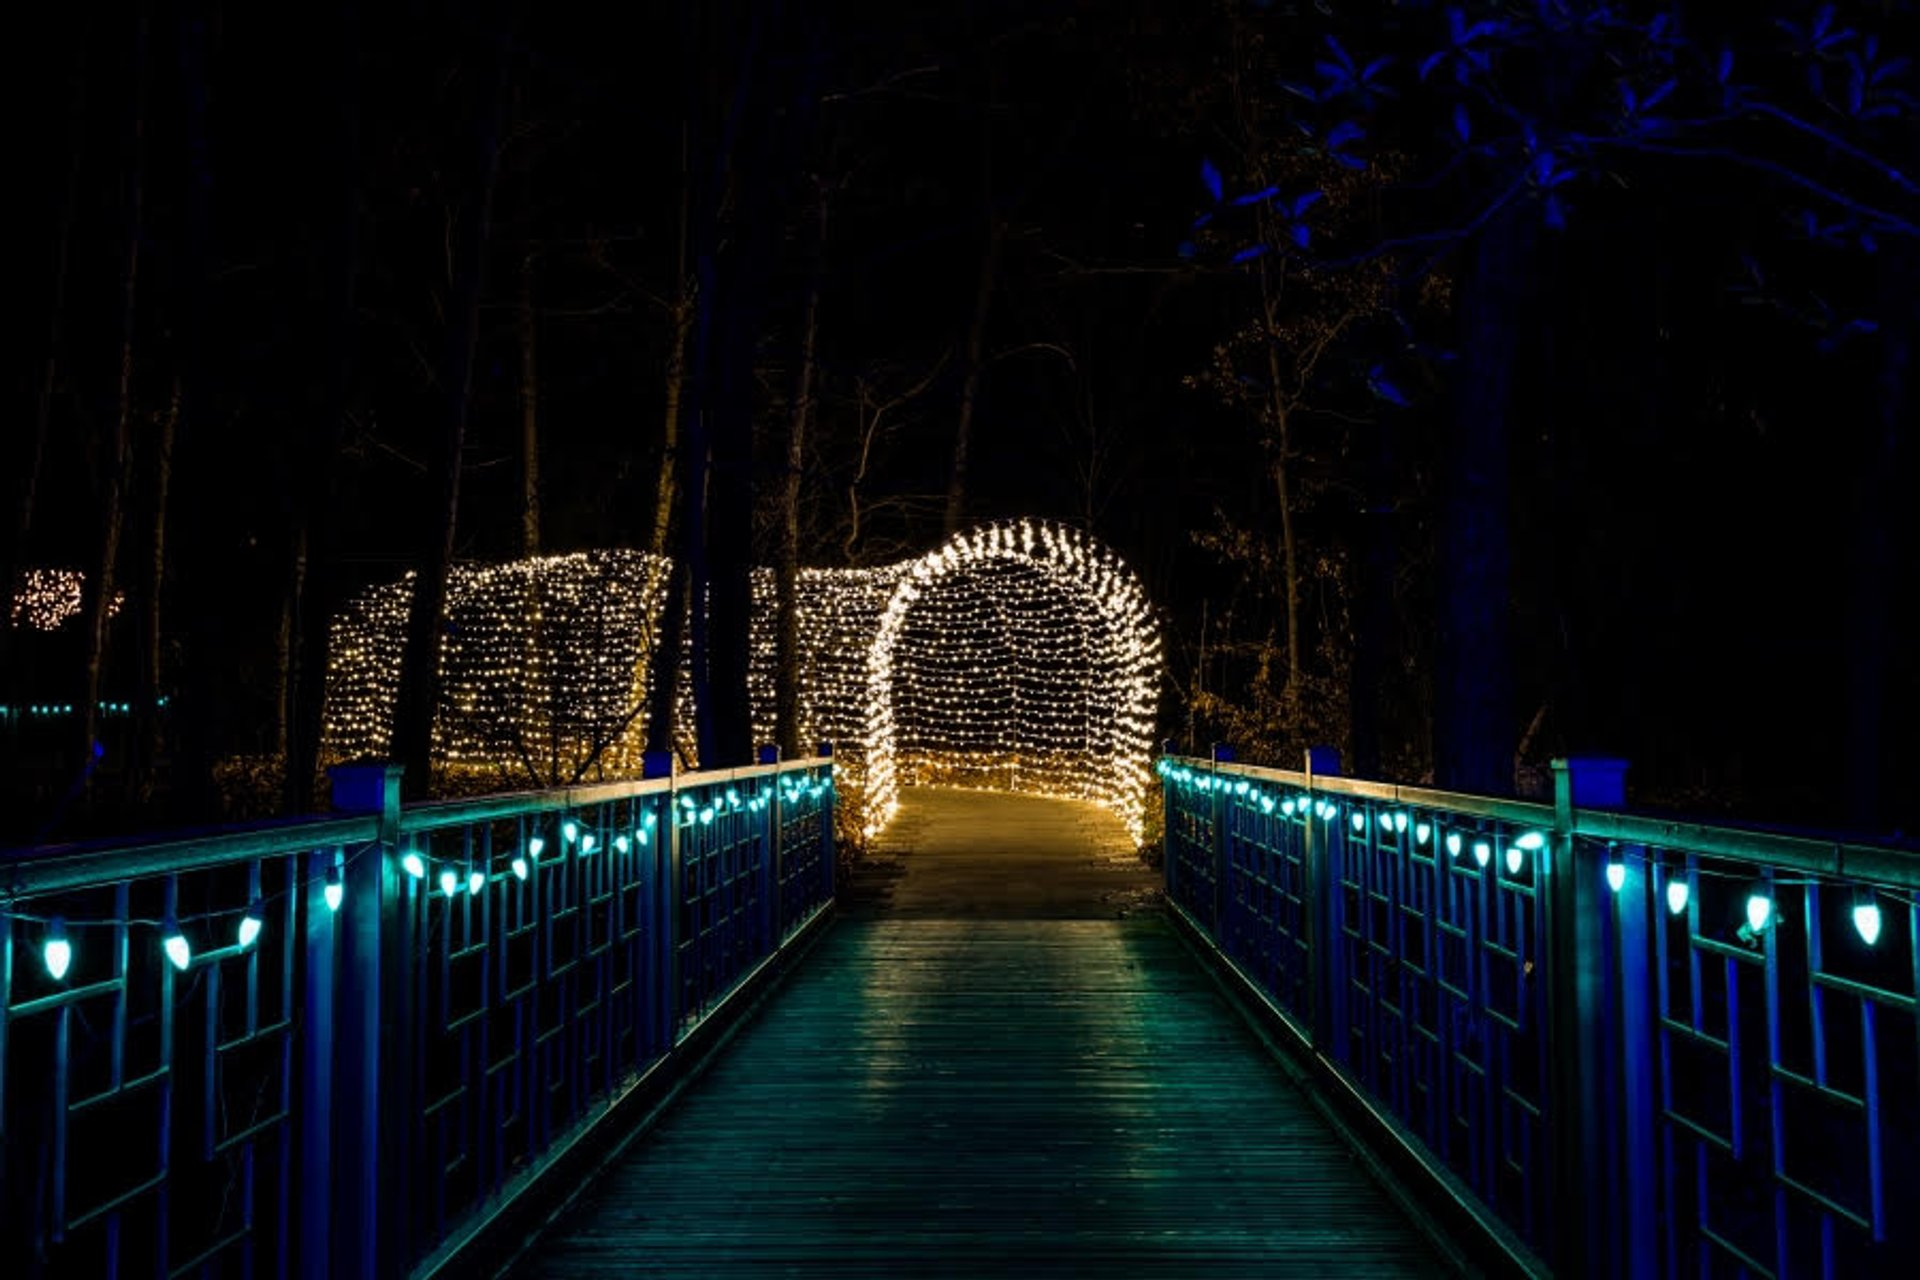 Powell Gardens Festival of Lights in Midwest - Best Season 2020